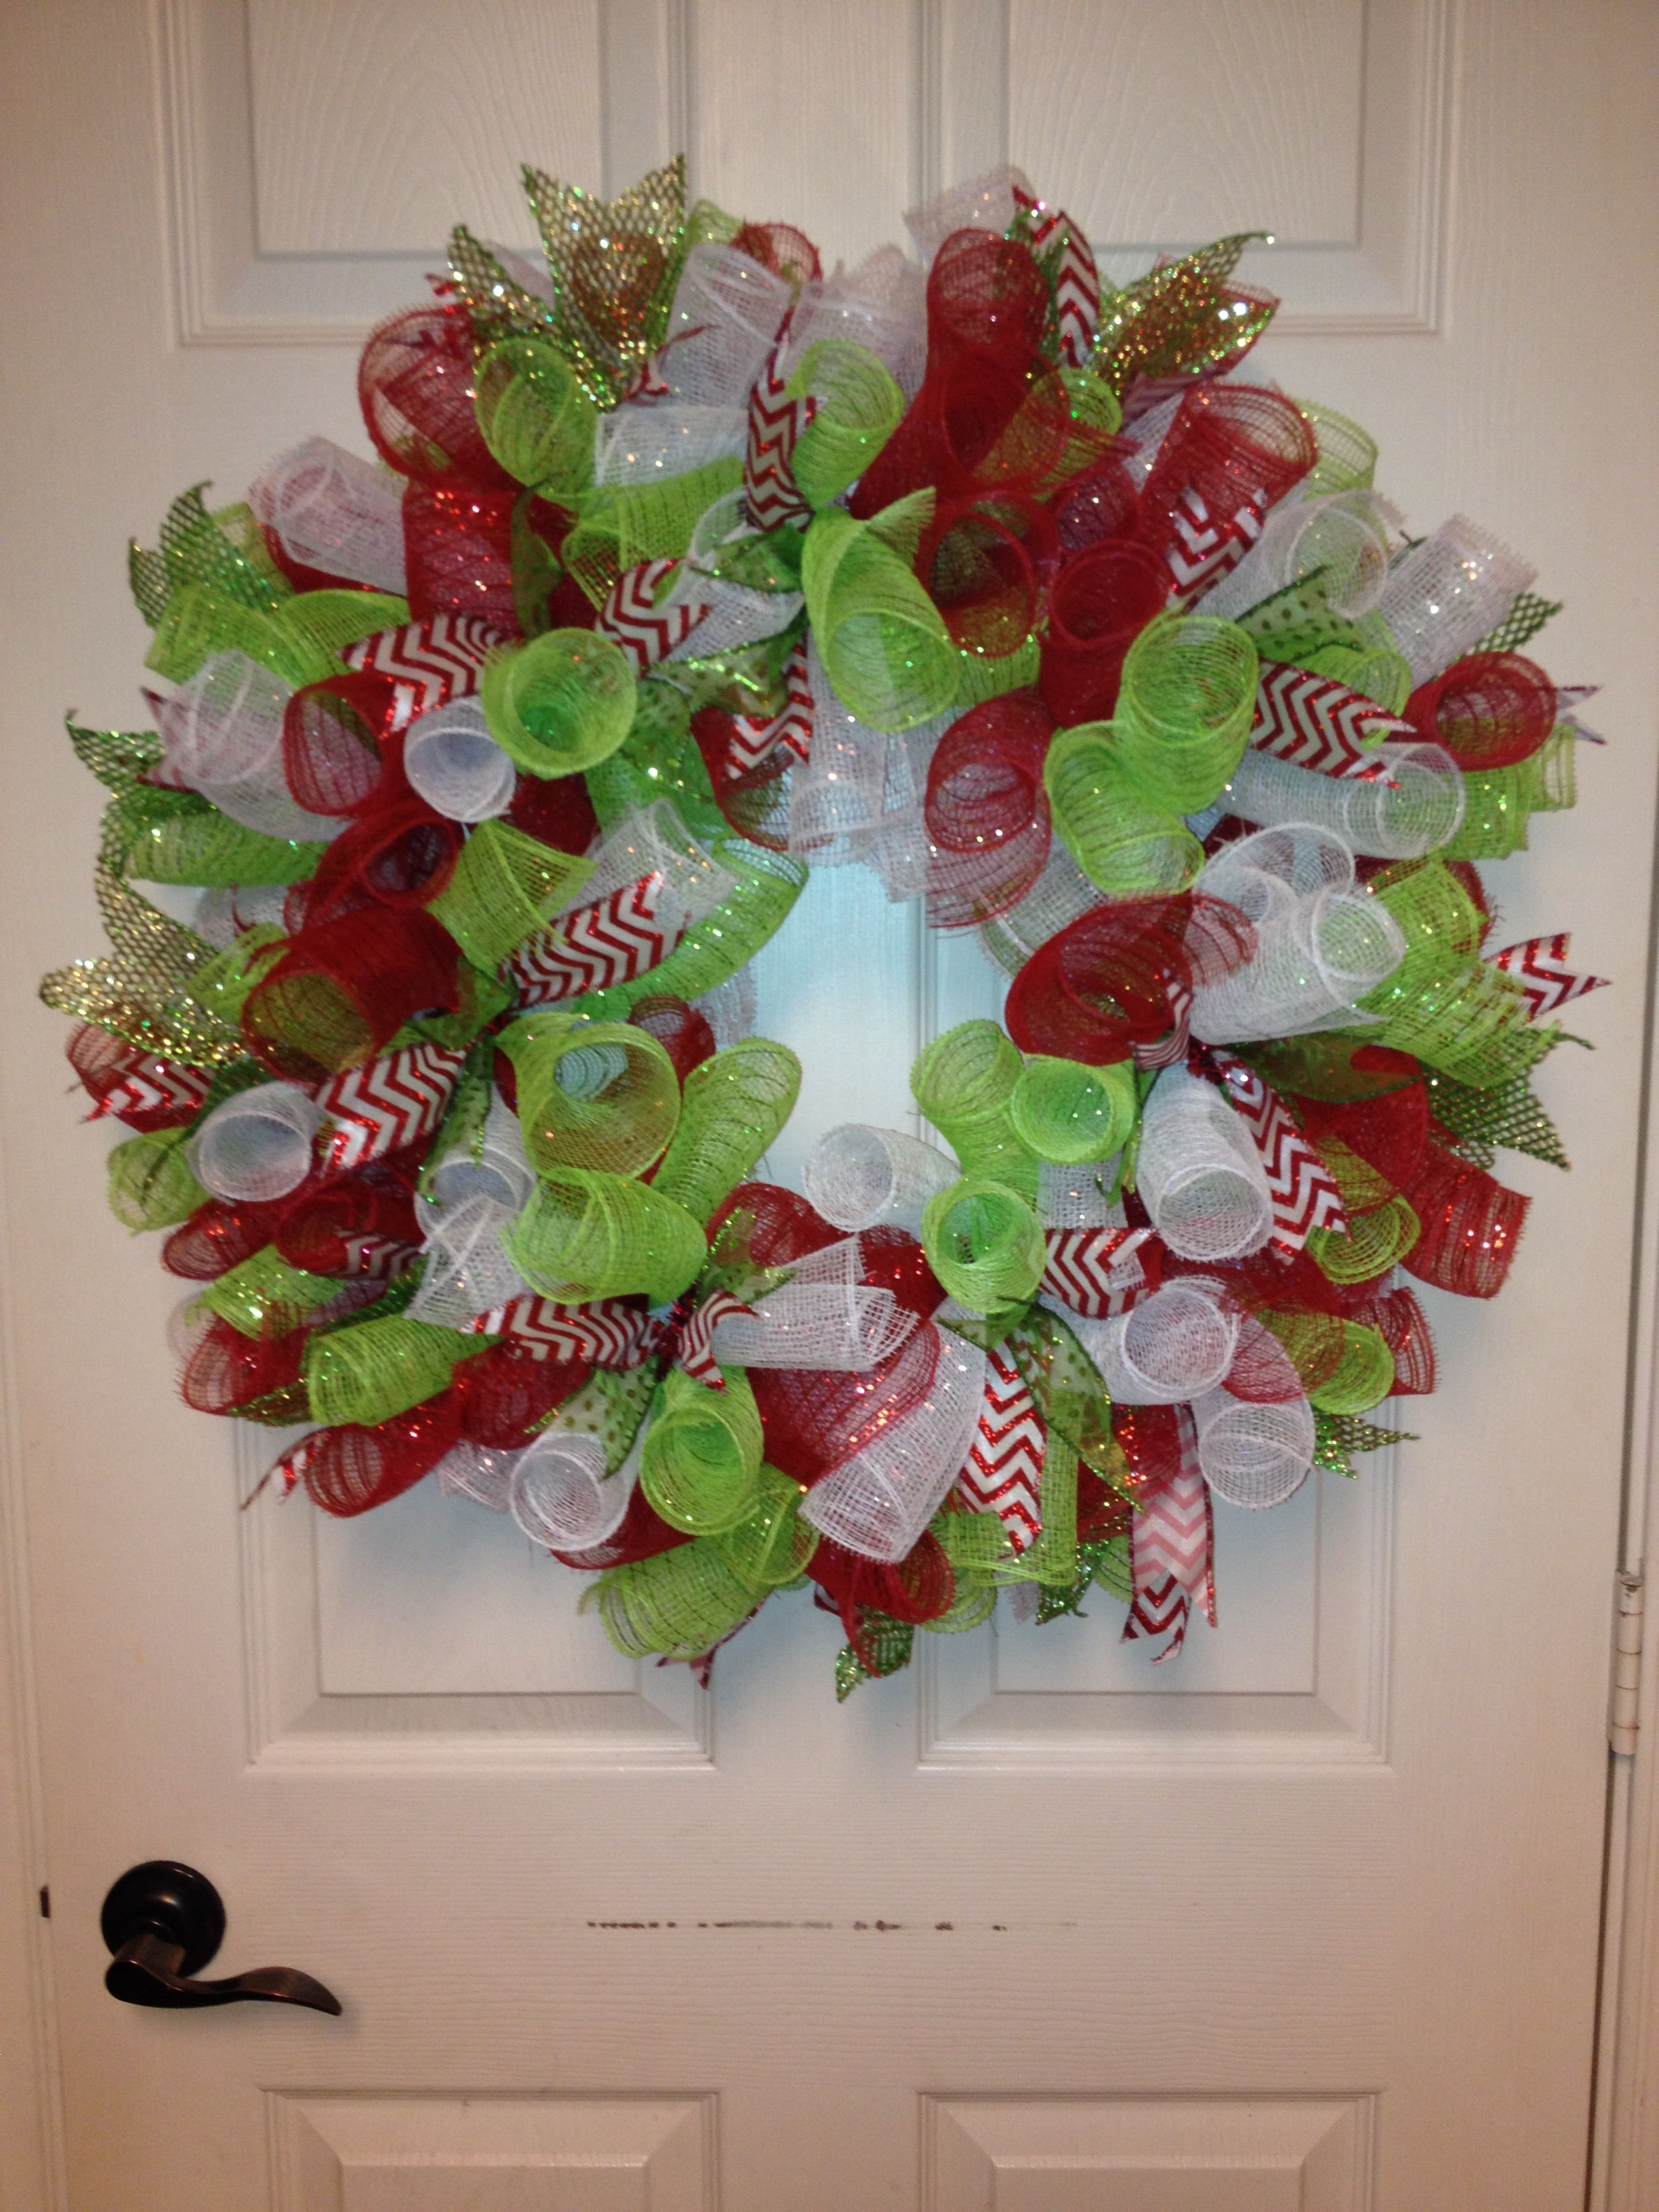 curly mesh wreath wreath crafts wreath ideas diy wreath mesh ribbon deco